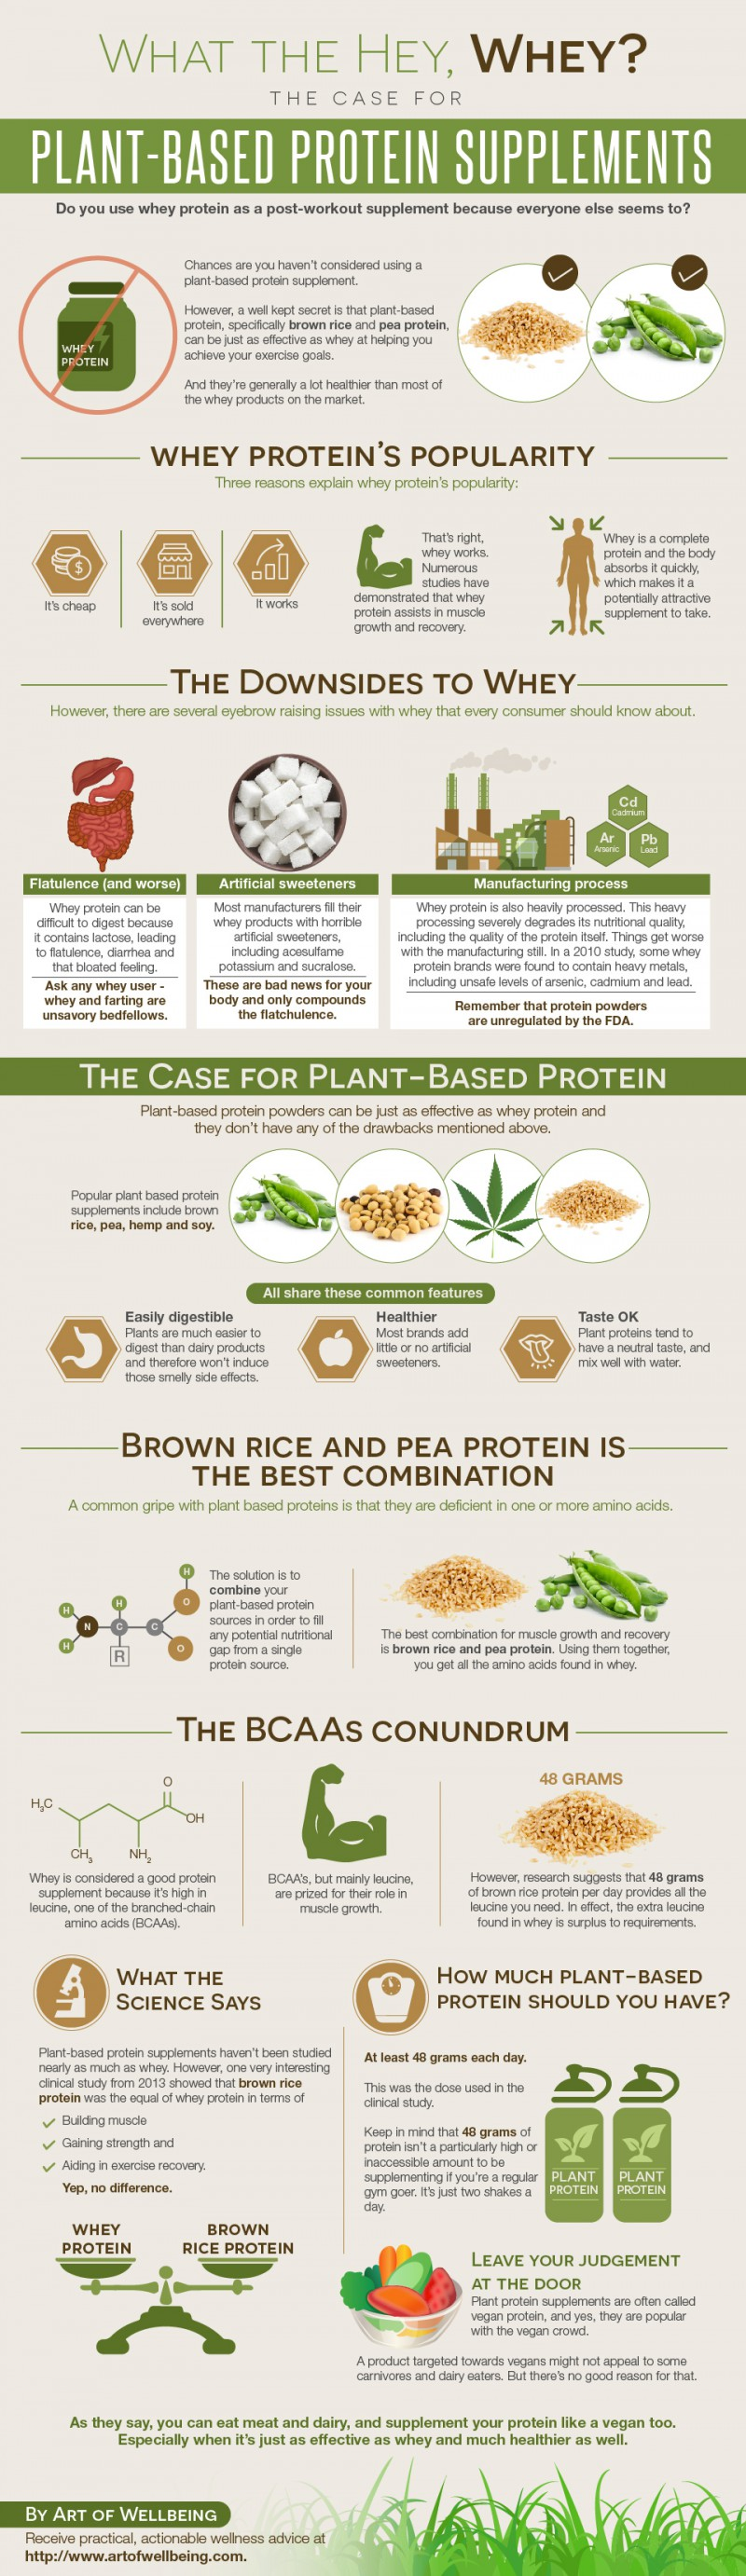 Plant based protein Supplements